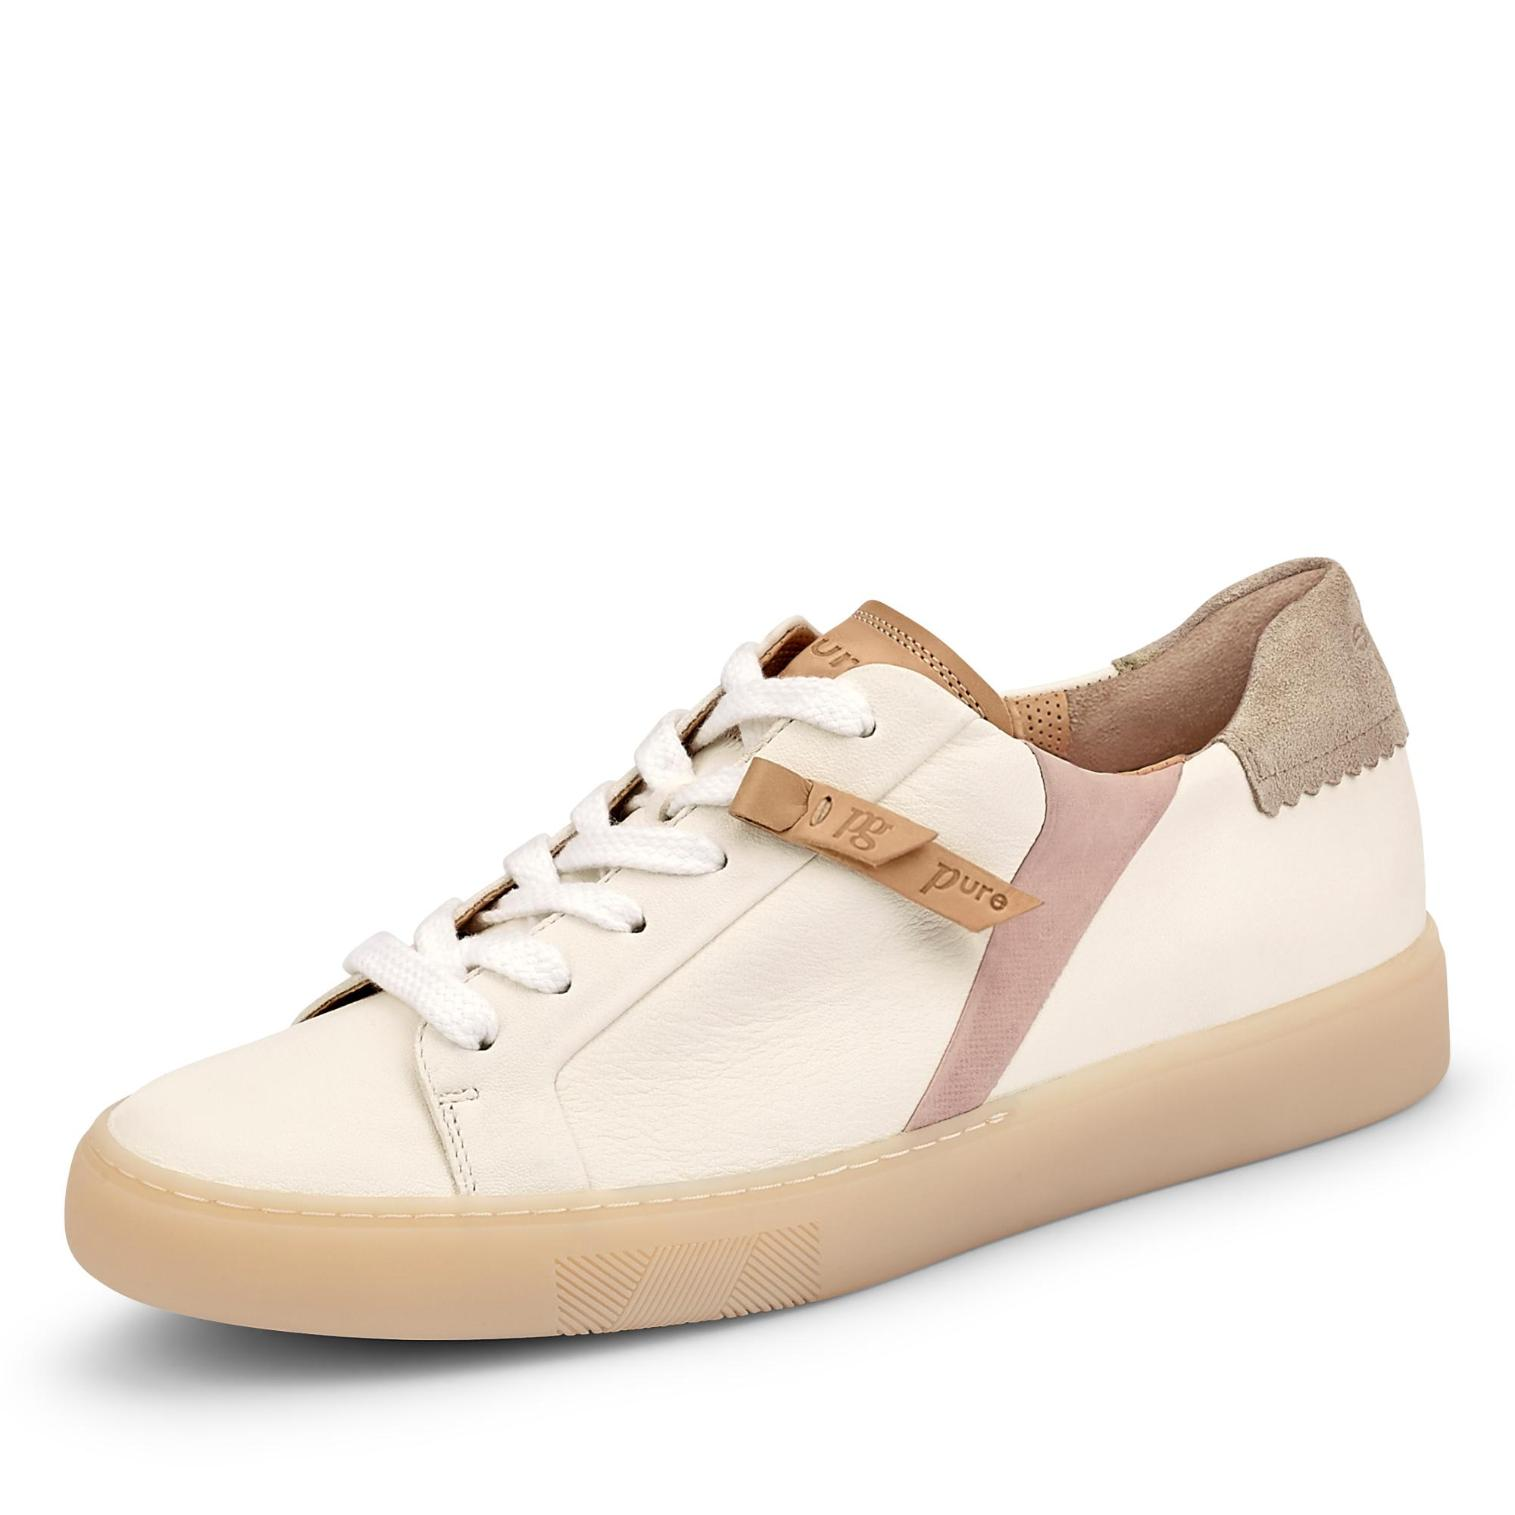 paul green -  PG PURE GO!ZERO Sneaker - Damen - rosa